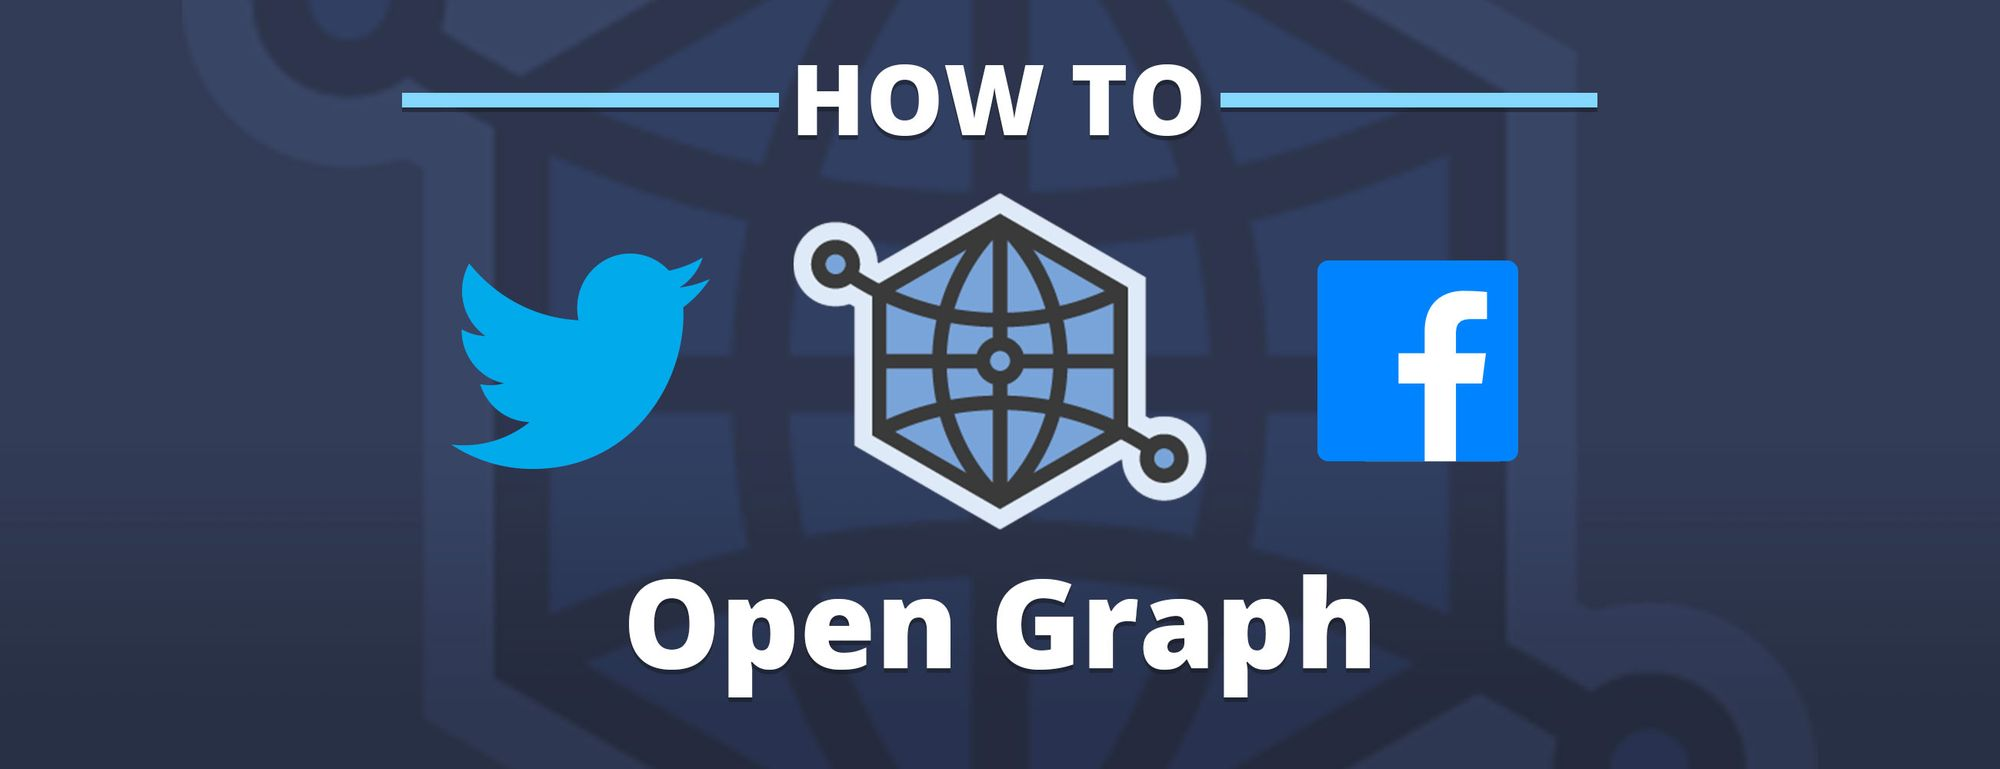 What is Open Graph and how can I use it for my website?